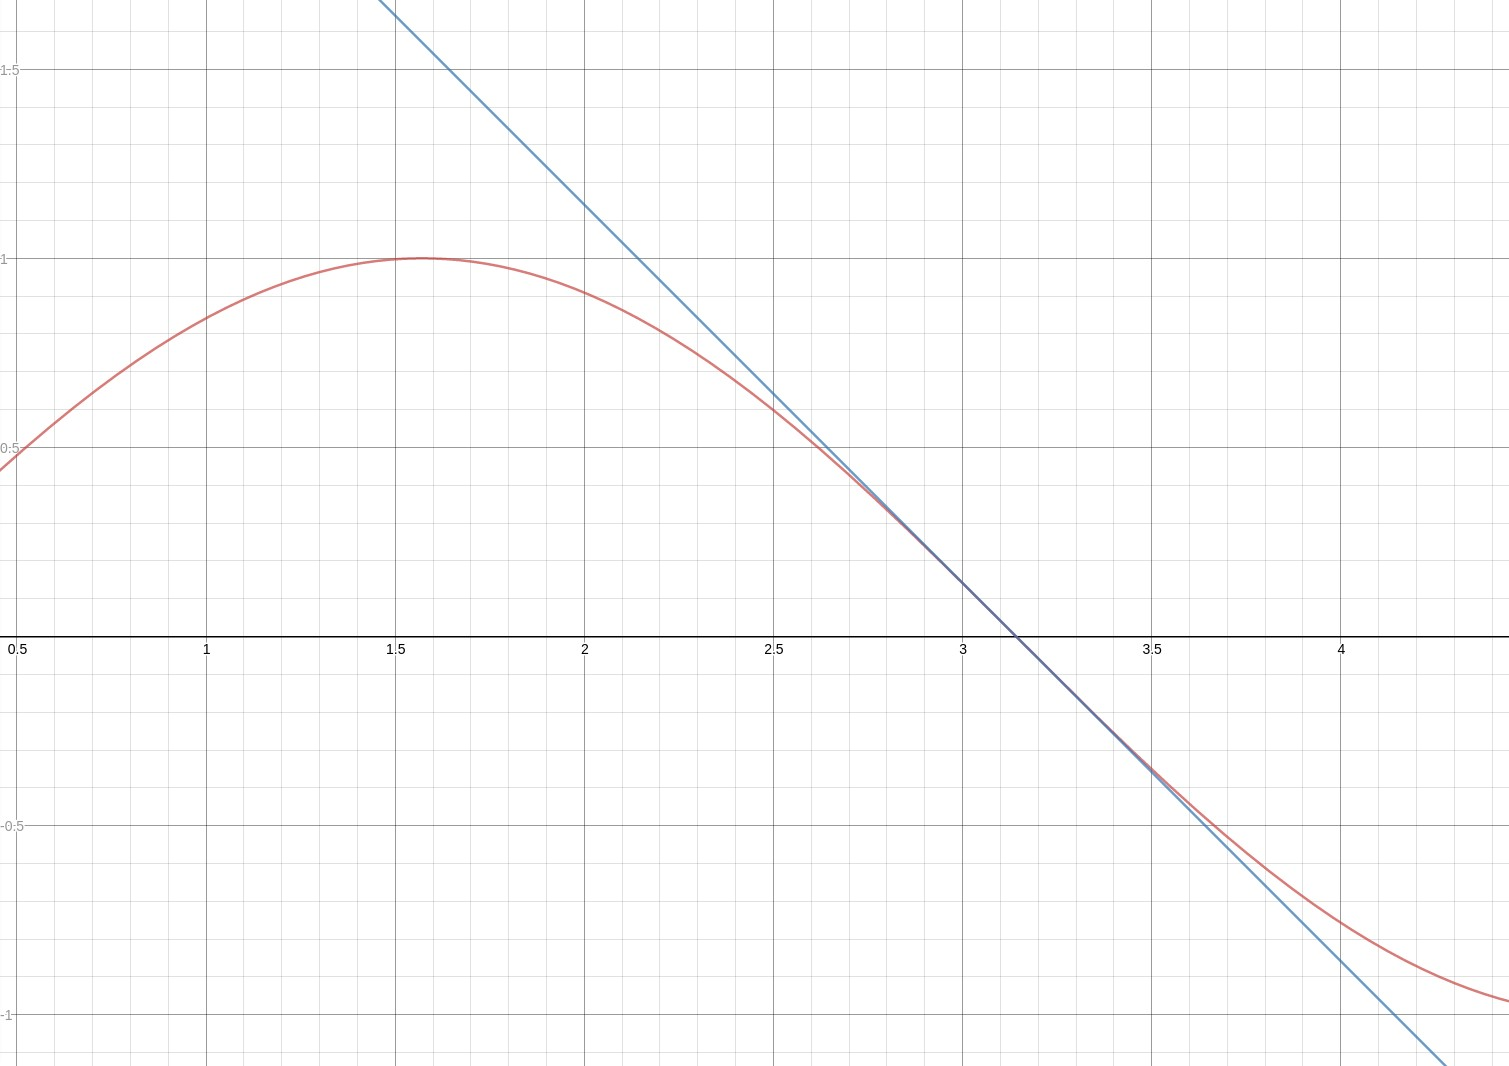 Our linear function versus the actual function.